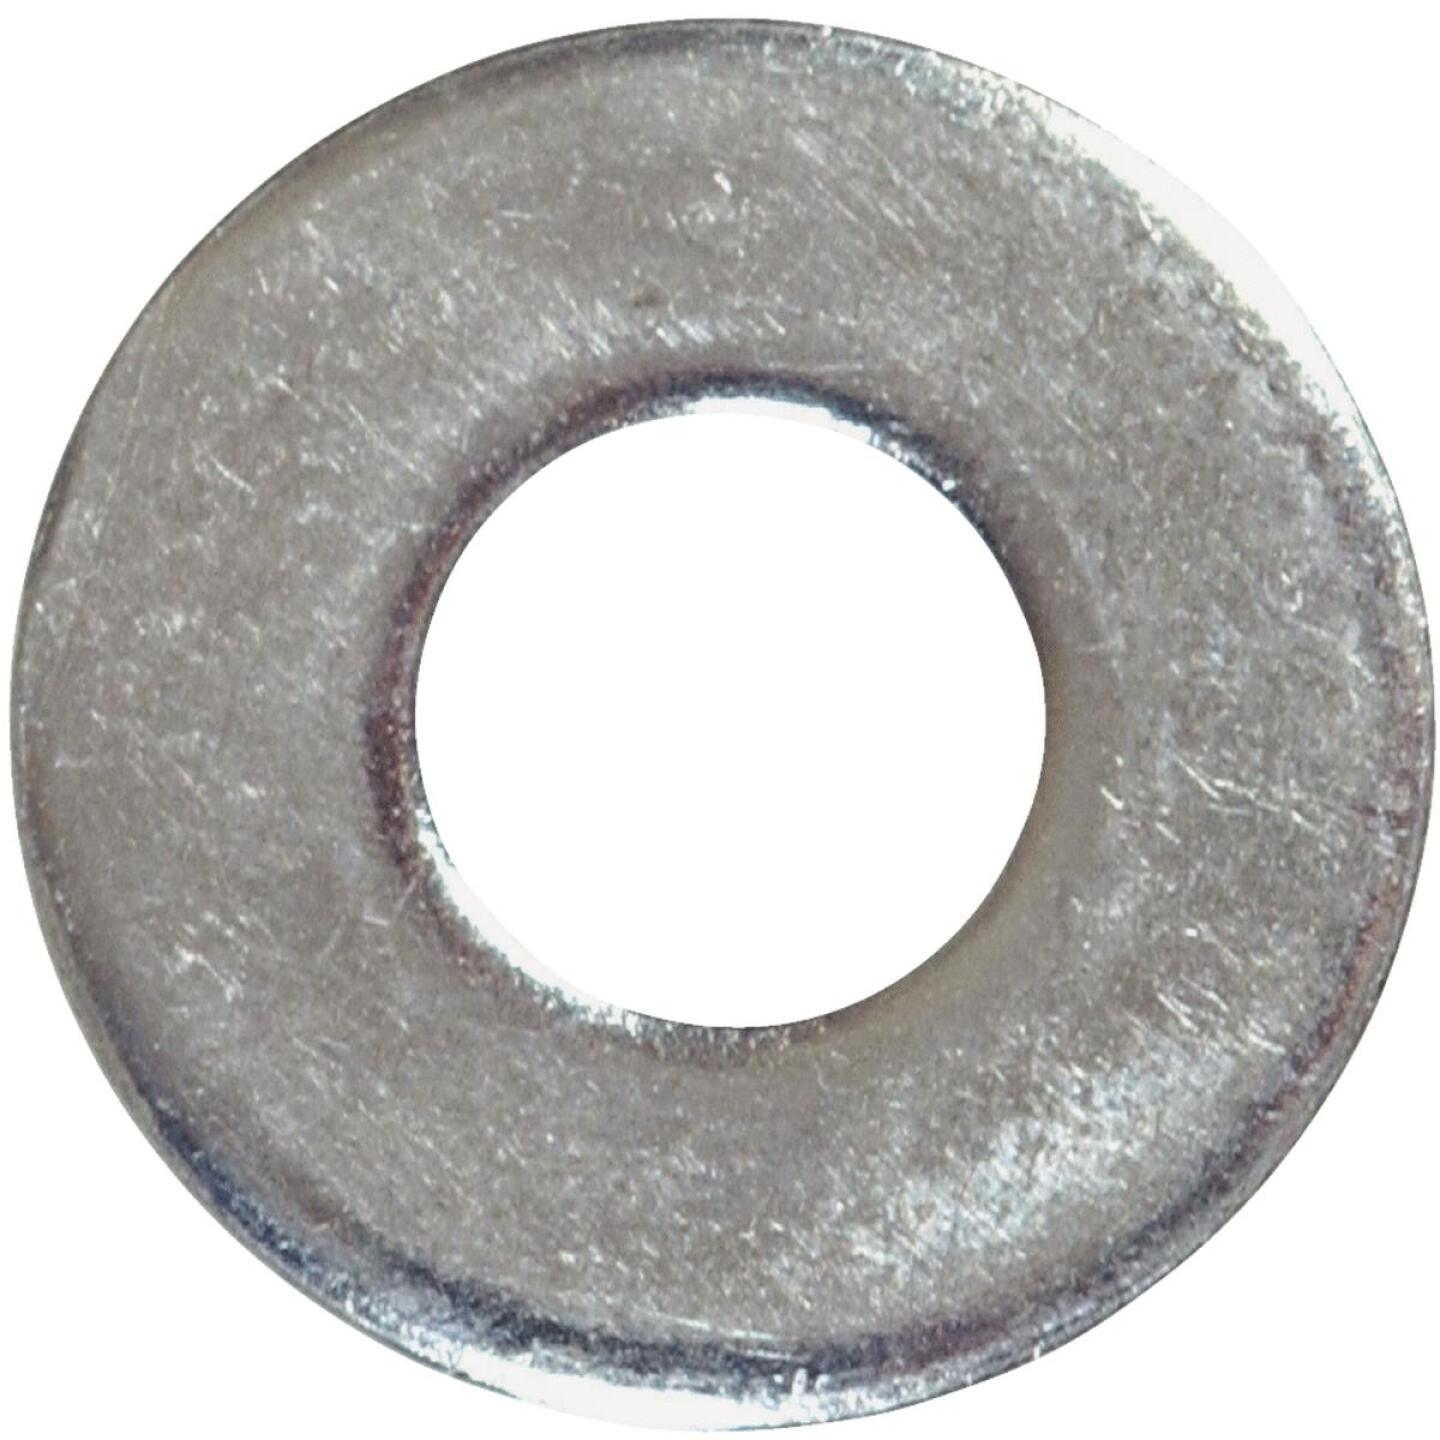 Hillman 3/8 In. Steel Zinc Plated Flat USS Washer (100 Ct.) Image 1